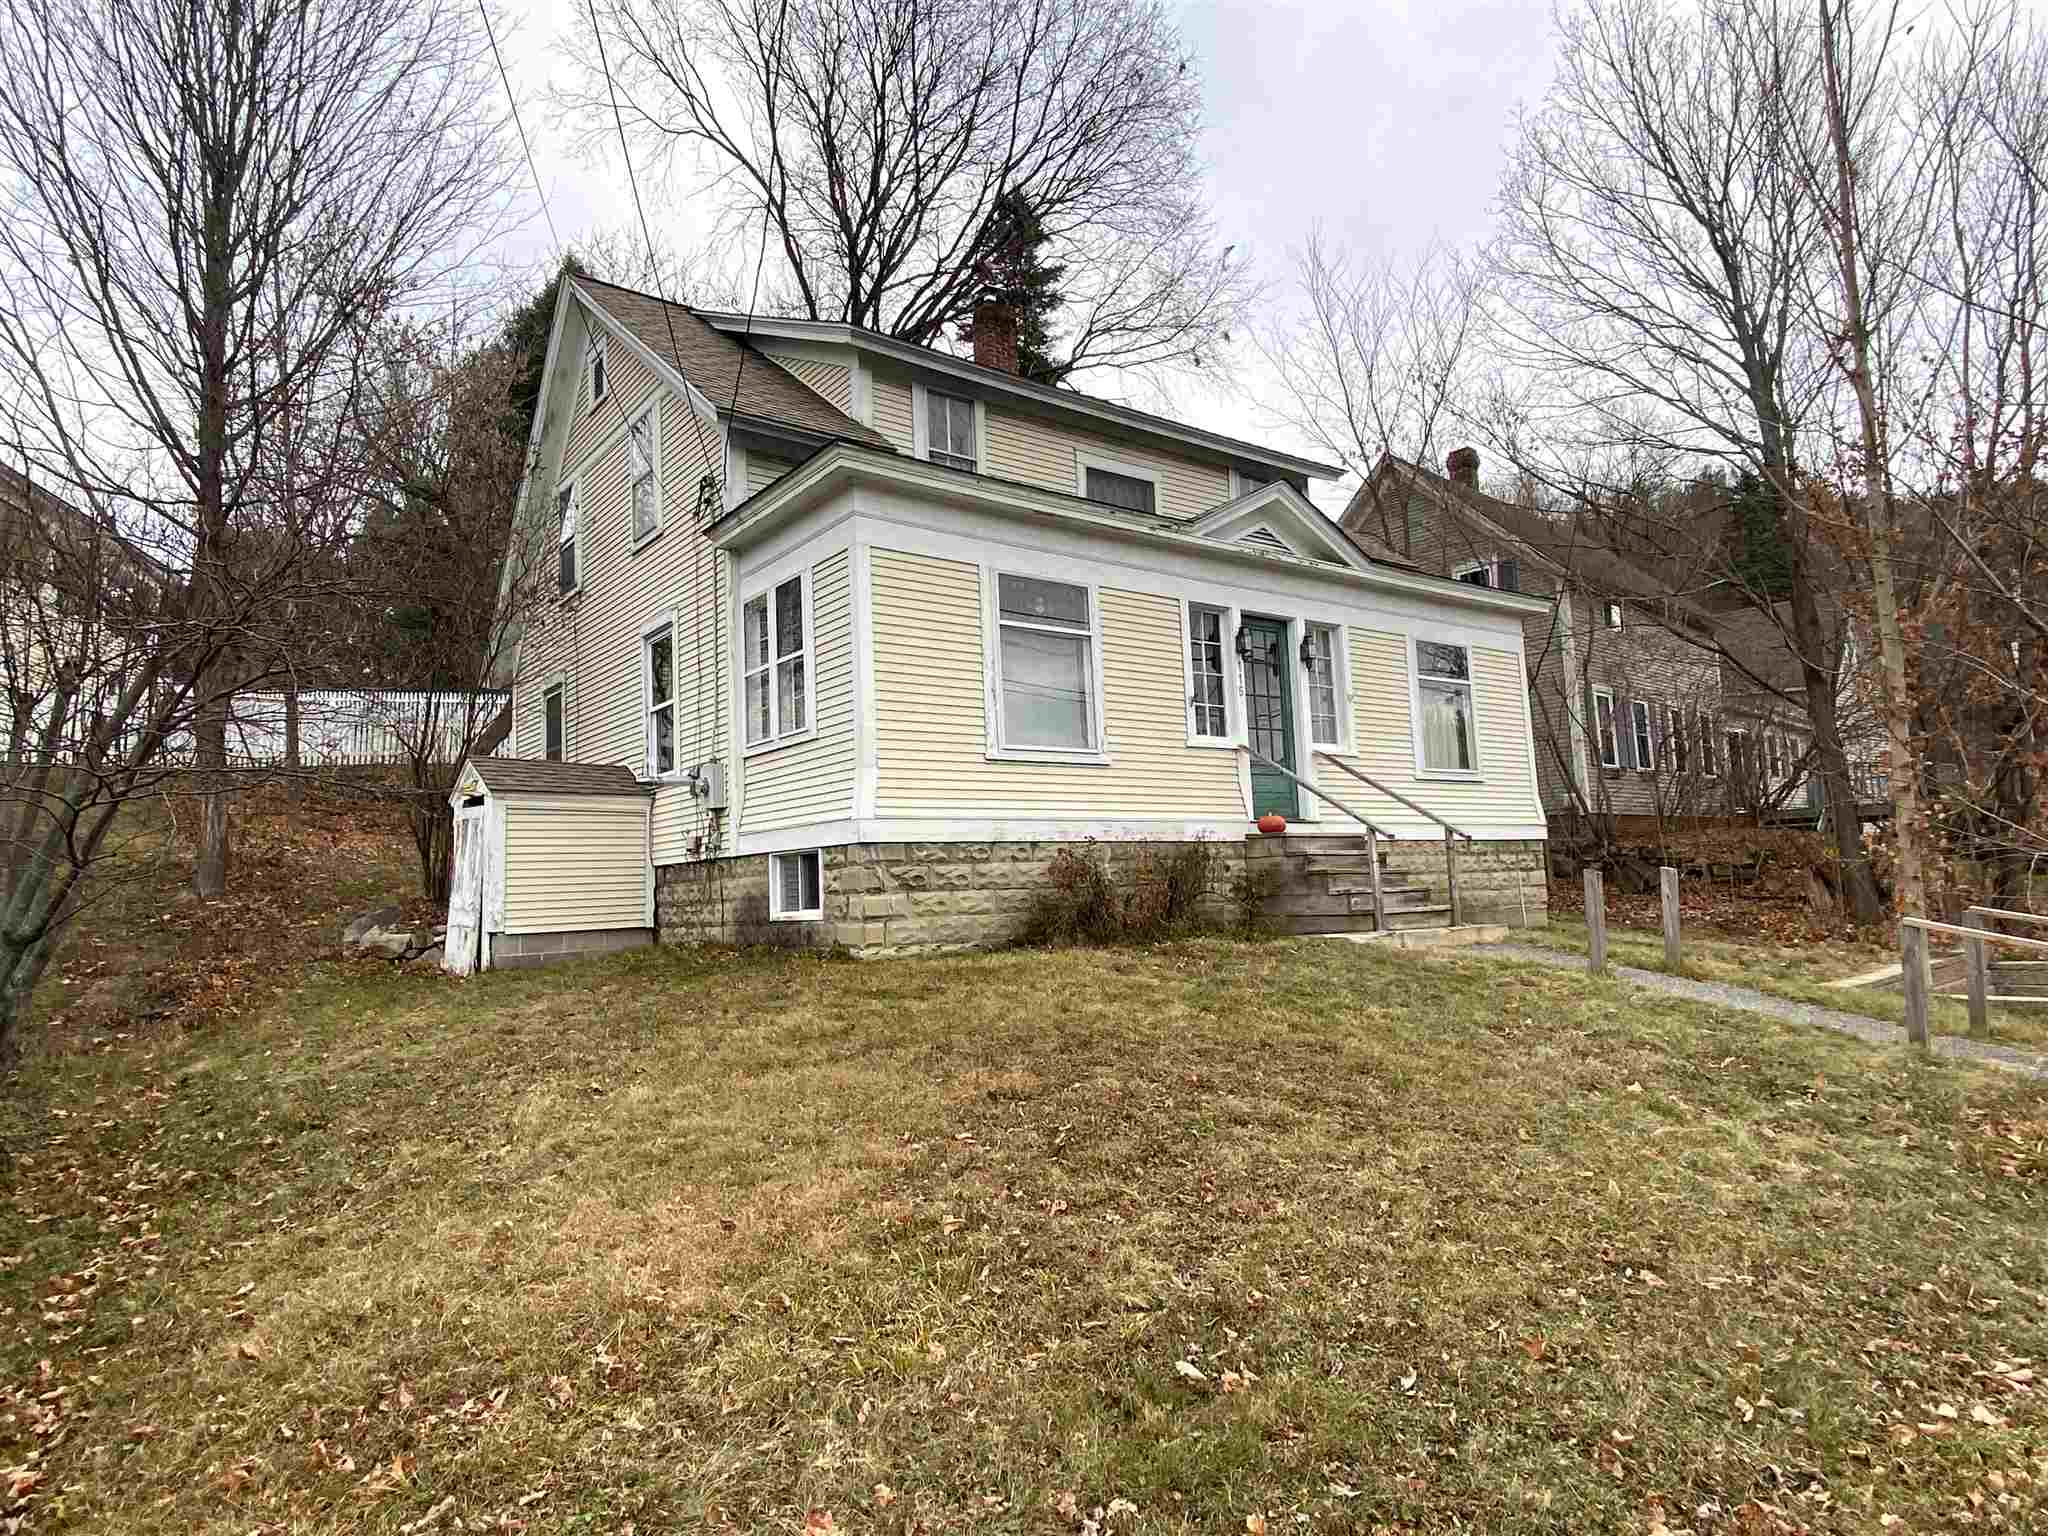 Lebanon NH 03766 Home for sale $List Price is $269,000